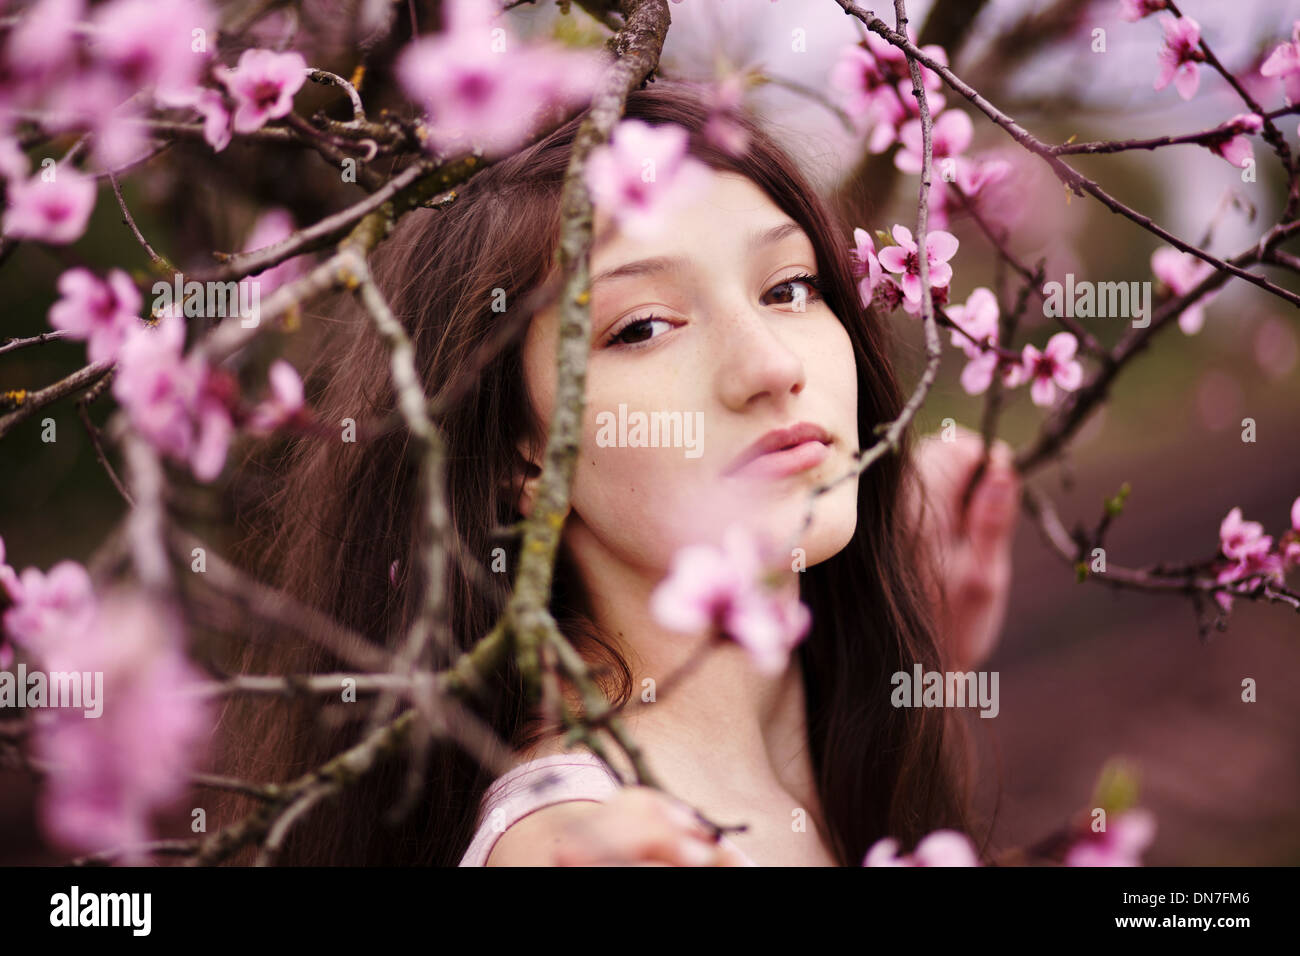 Girl with cherry blossoms, portrait Stock Photo